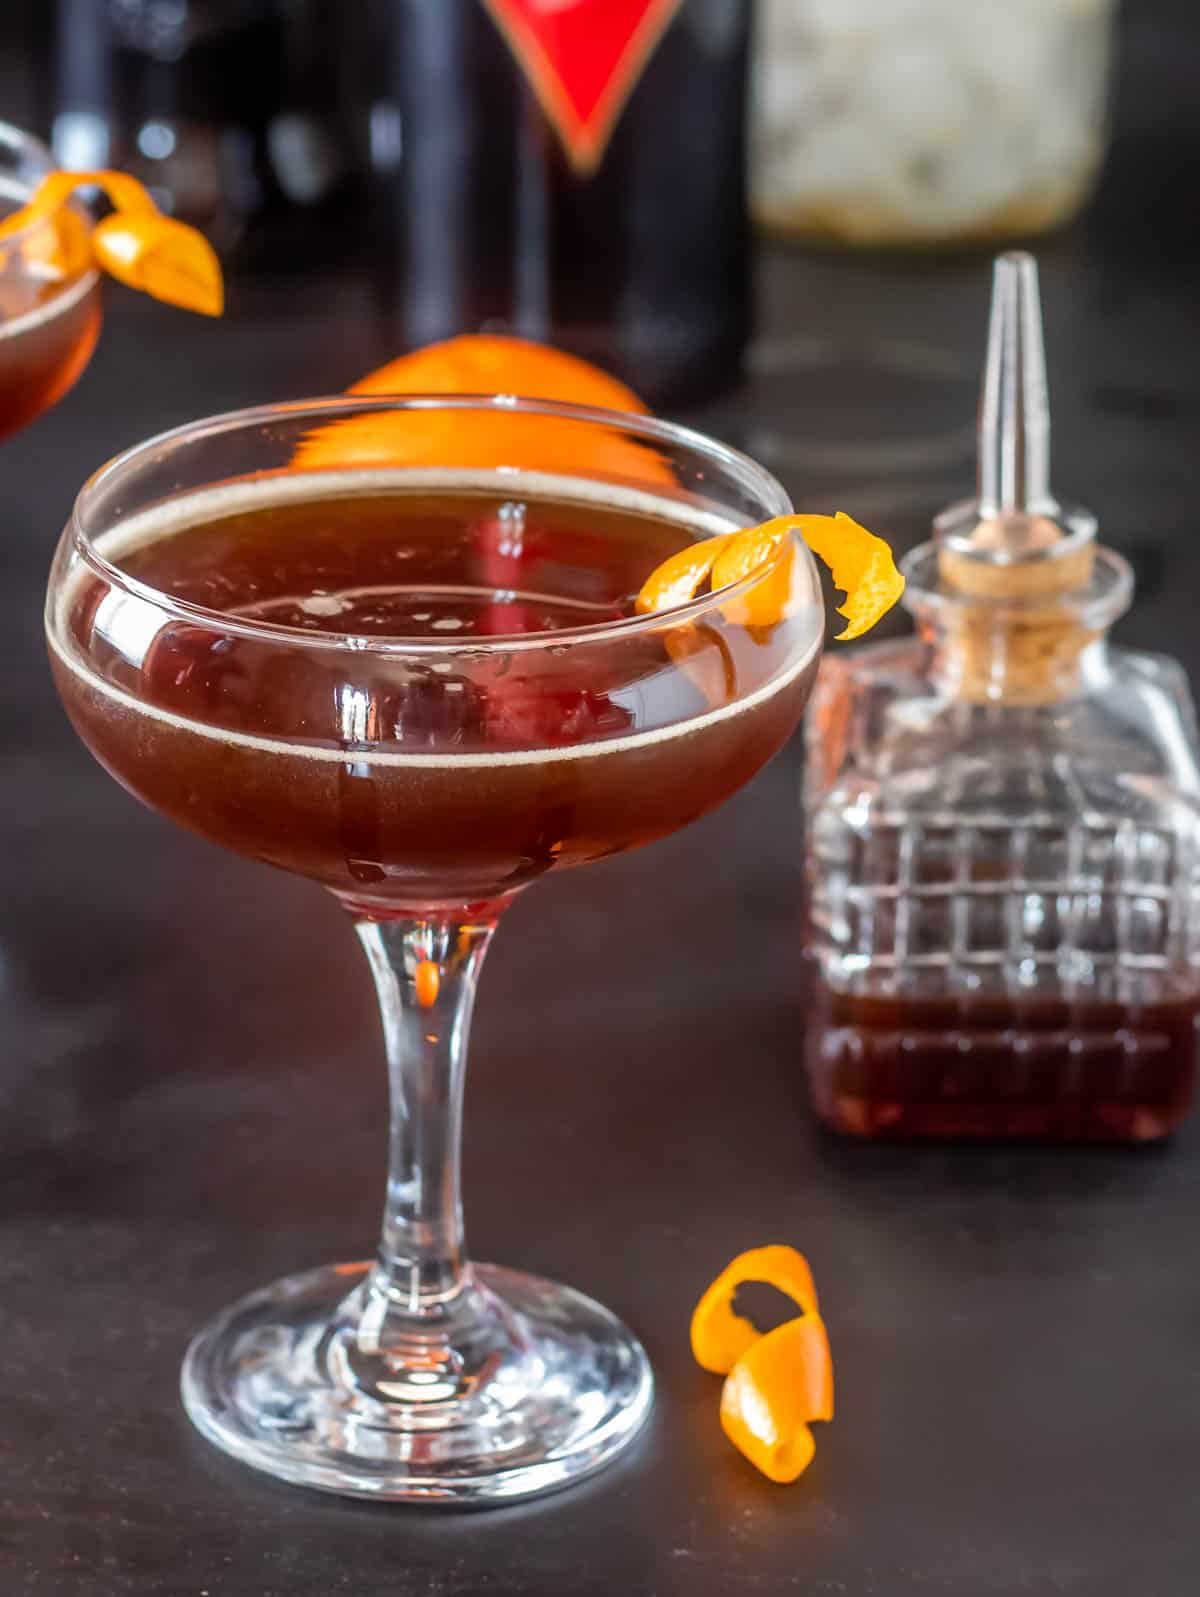 Mid-Summer's Night Cynar and Vermouth Cocktail - a deep mahogany cocktail in a coupe glass with a twist of orange.